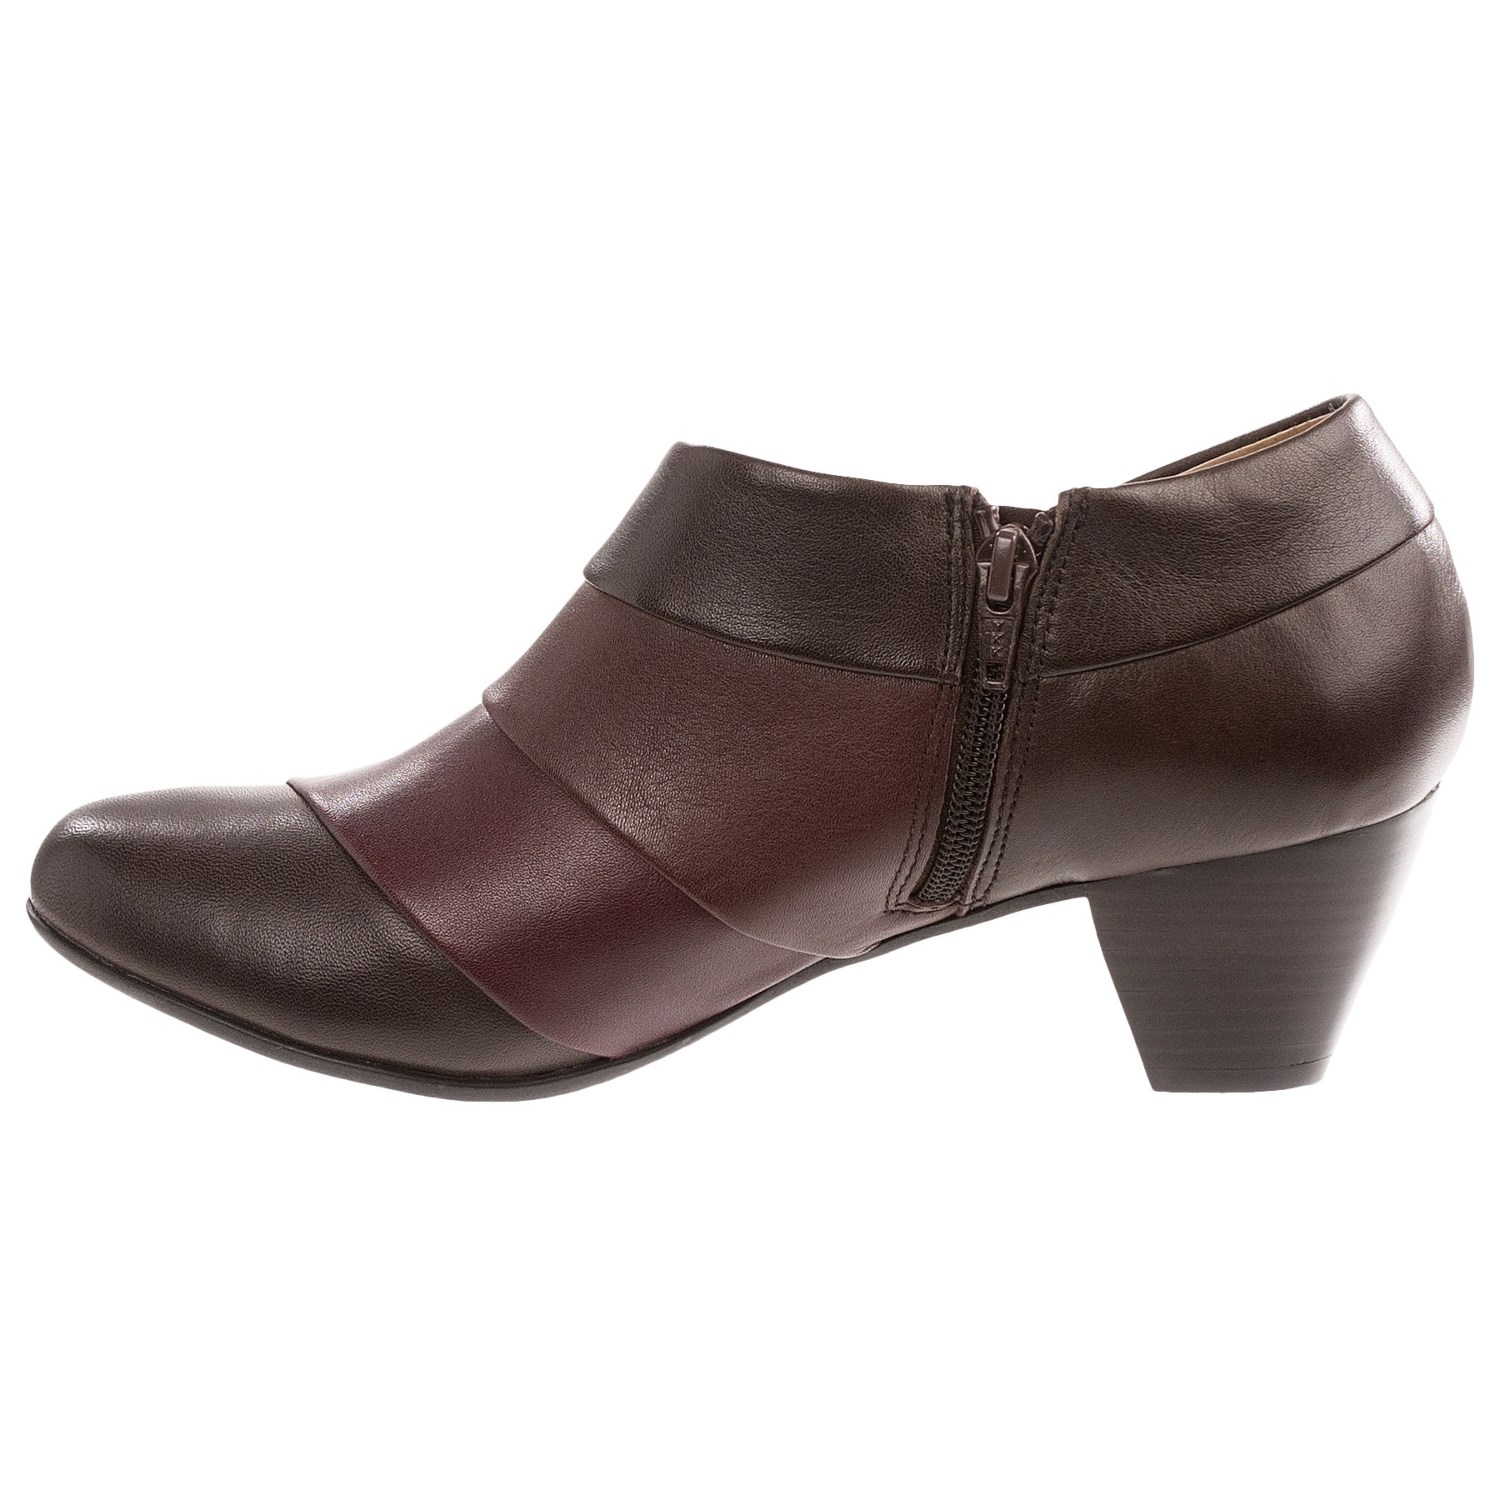 FREE SHIPPING AVAILABLE! Shop specialisedsteels.tk and save on Booties All Women's Shoes.